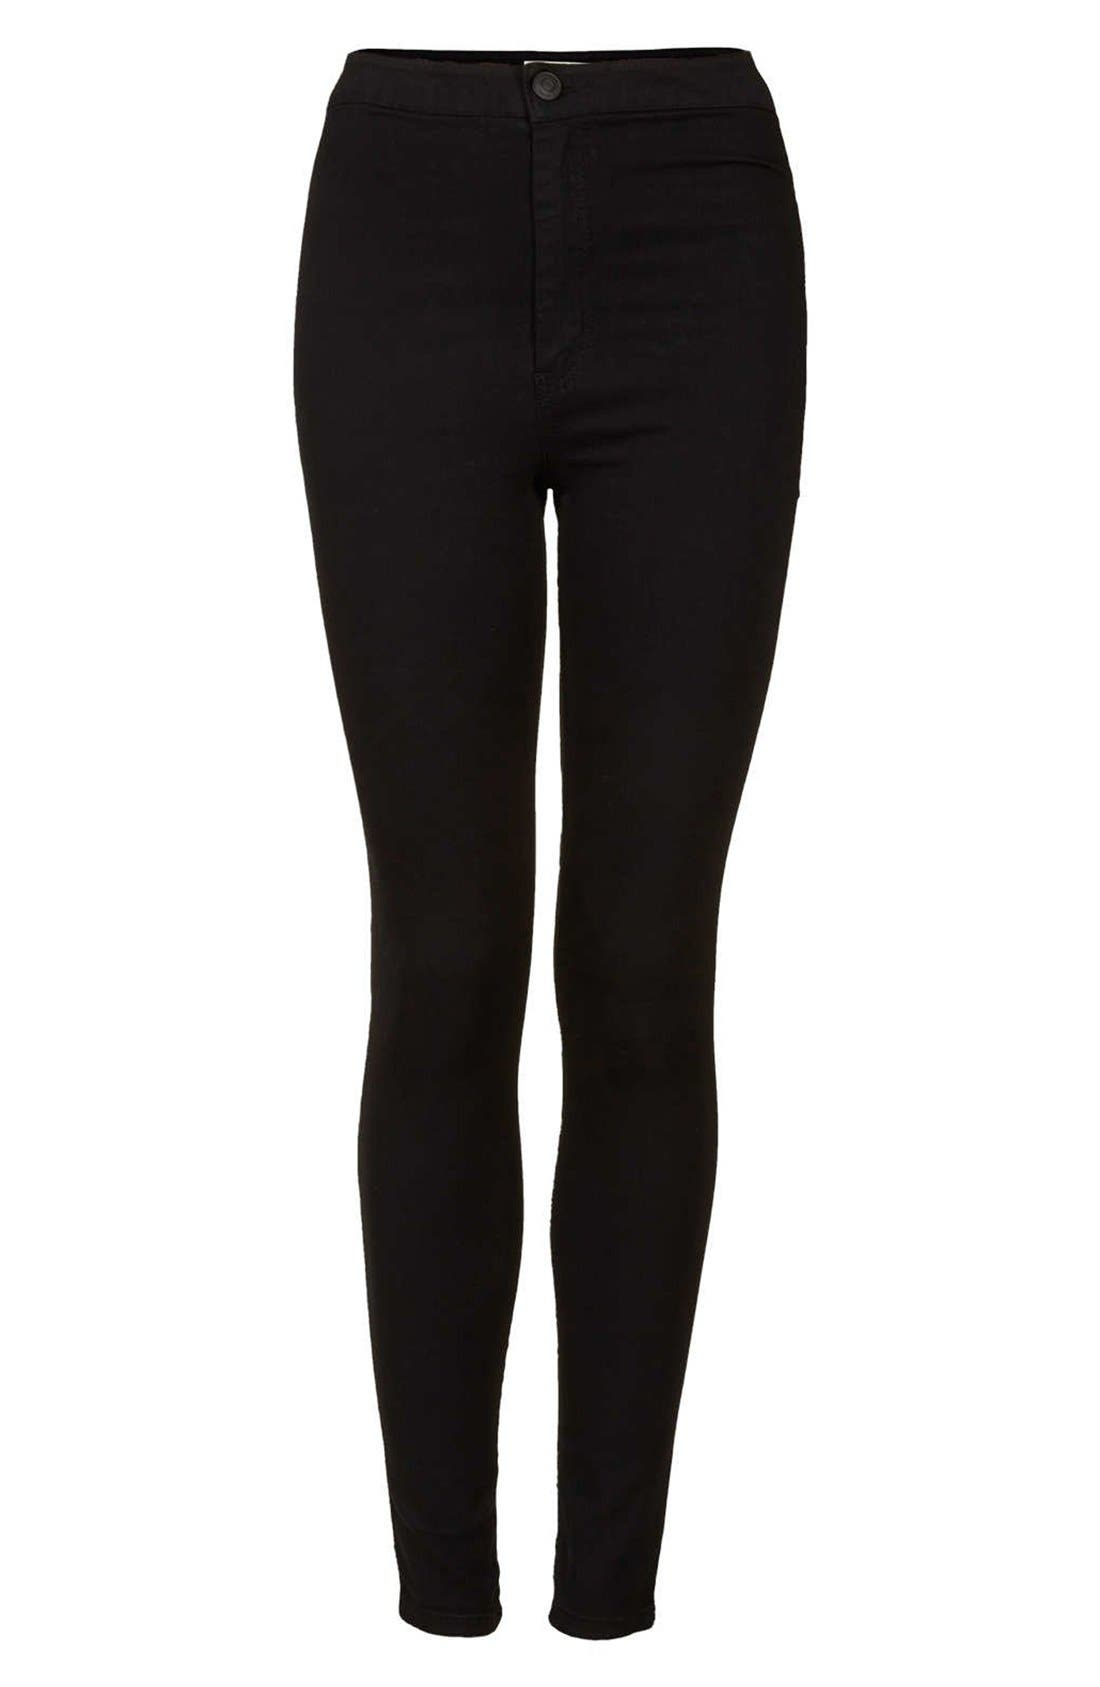 Alternate Image 3  - Topshop Moto 'Joni' High Rise Skinny Jeans (Regular & Short)